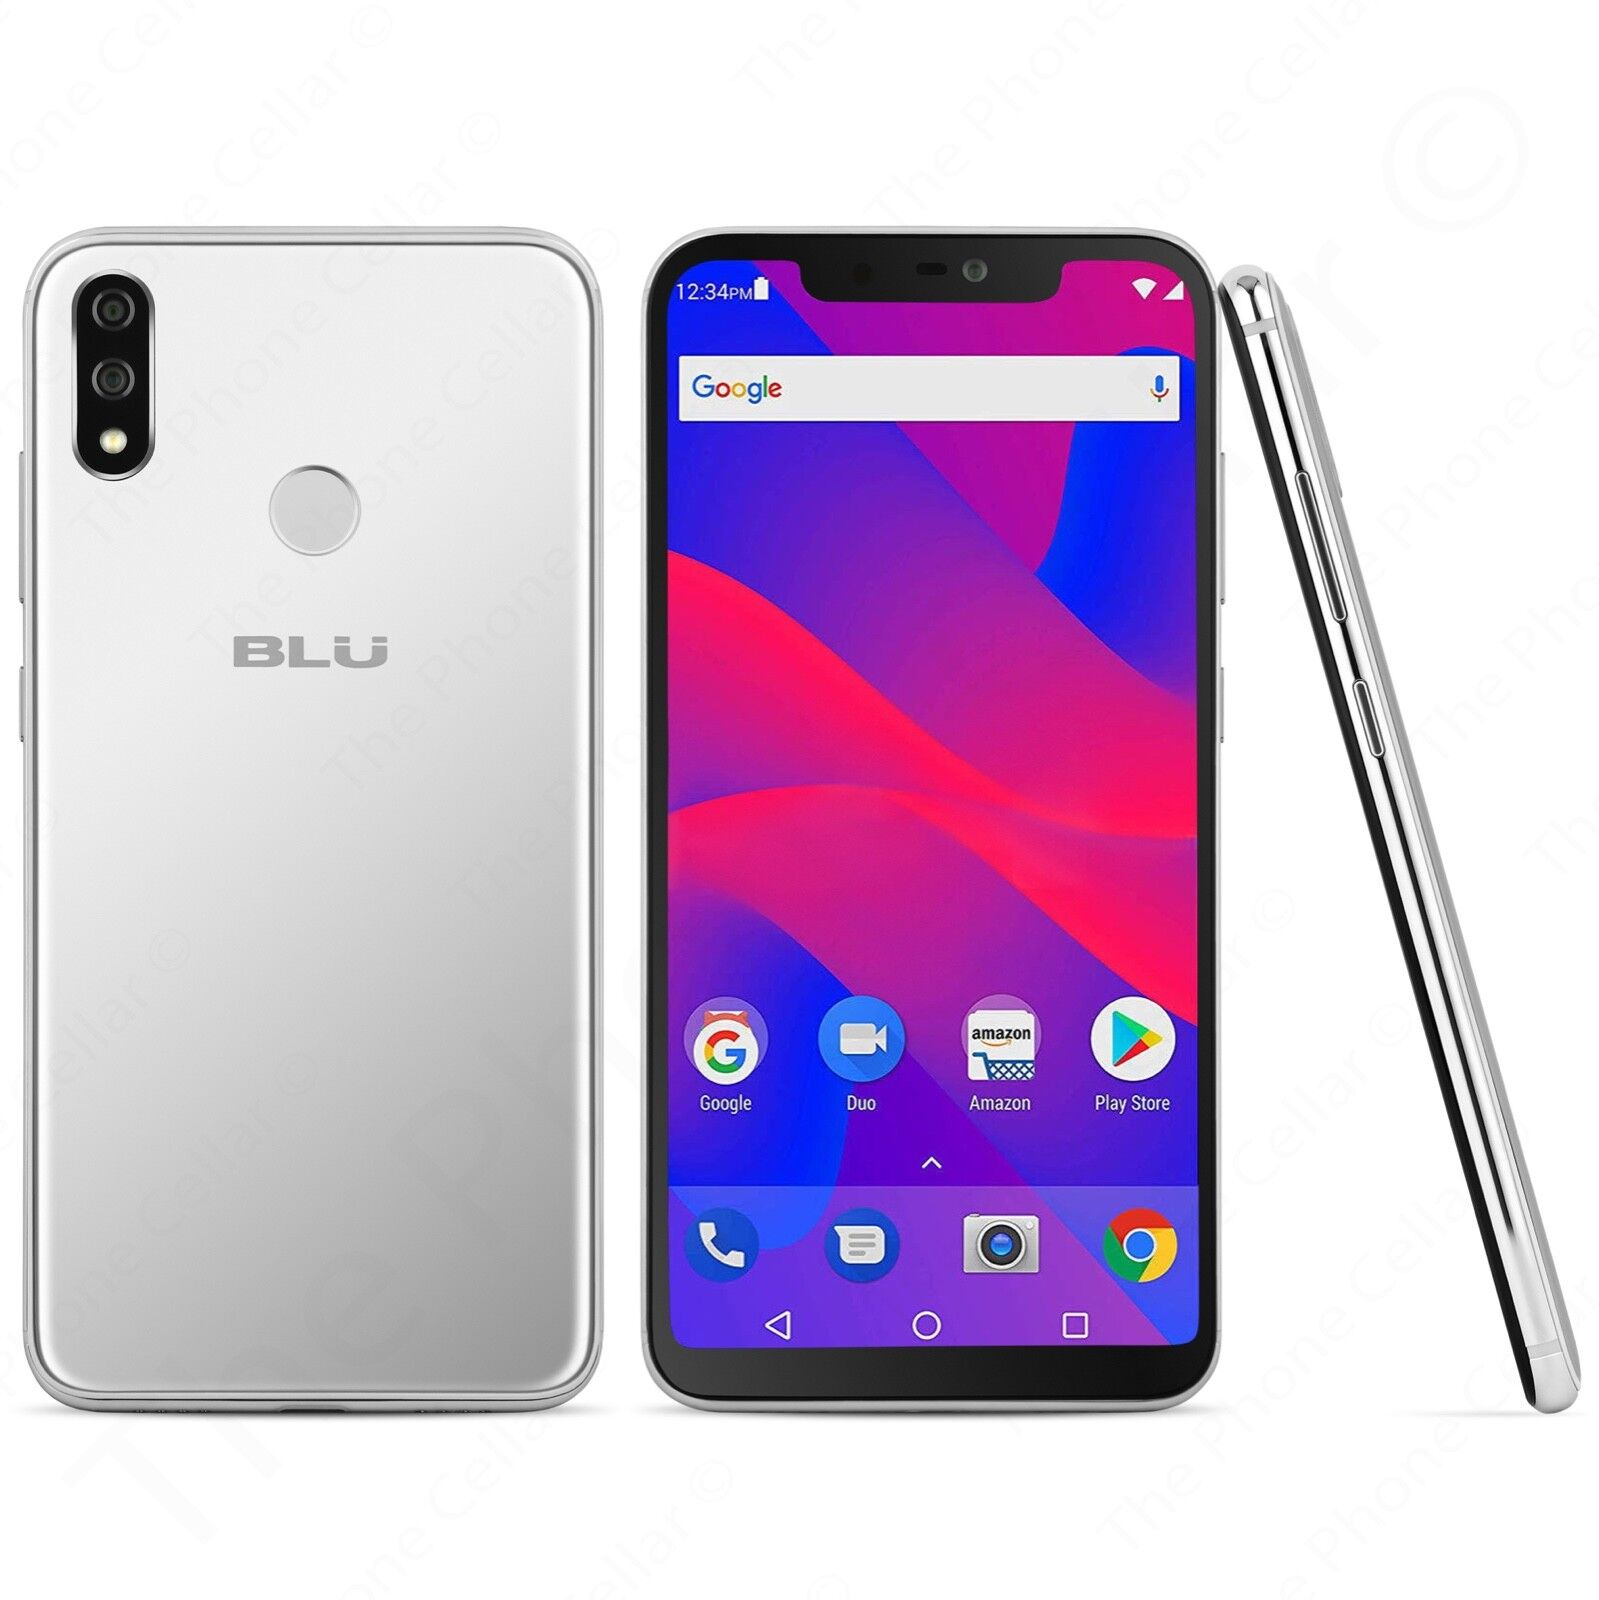 Android Phone -   Unlocked BLU - Vivo XI+ V0310WW Cell Phone | 64GB (Silver) Smartphone Android